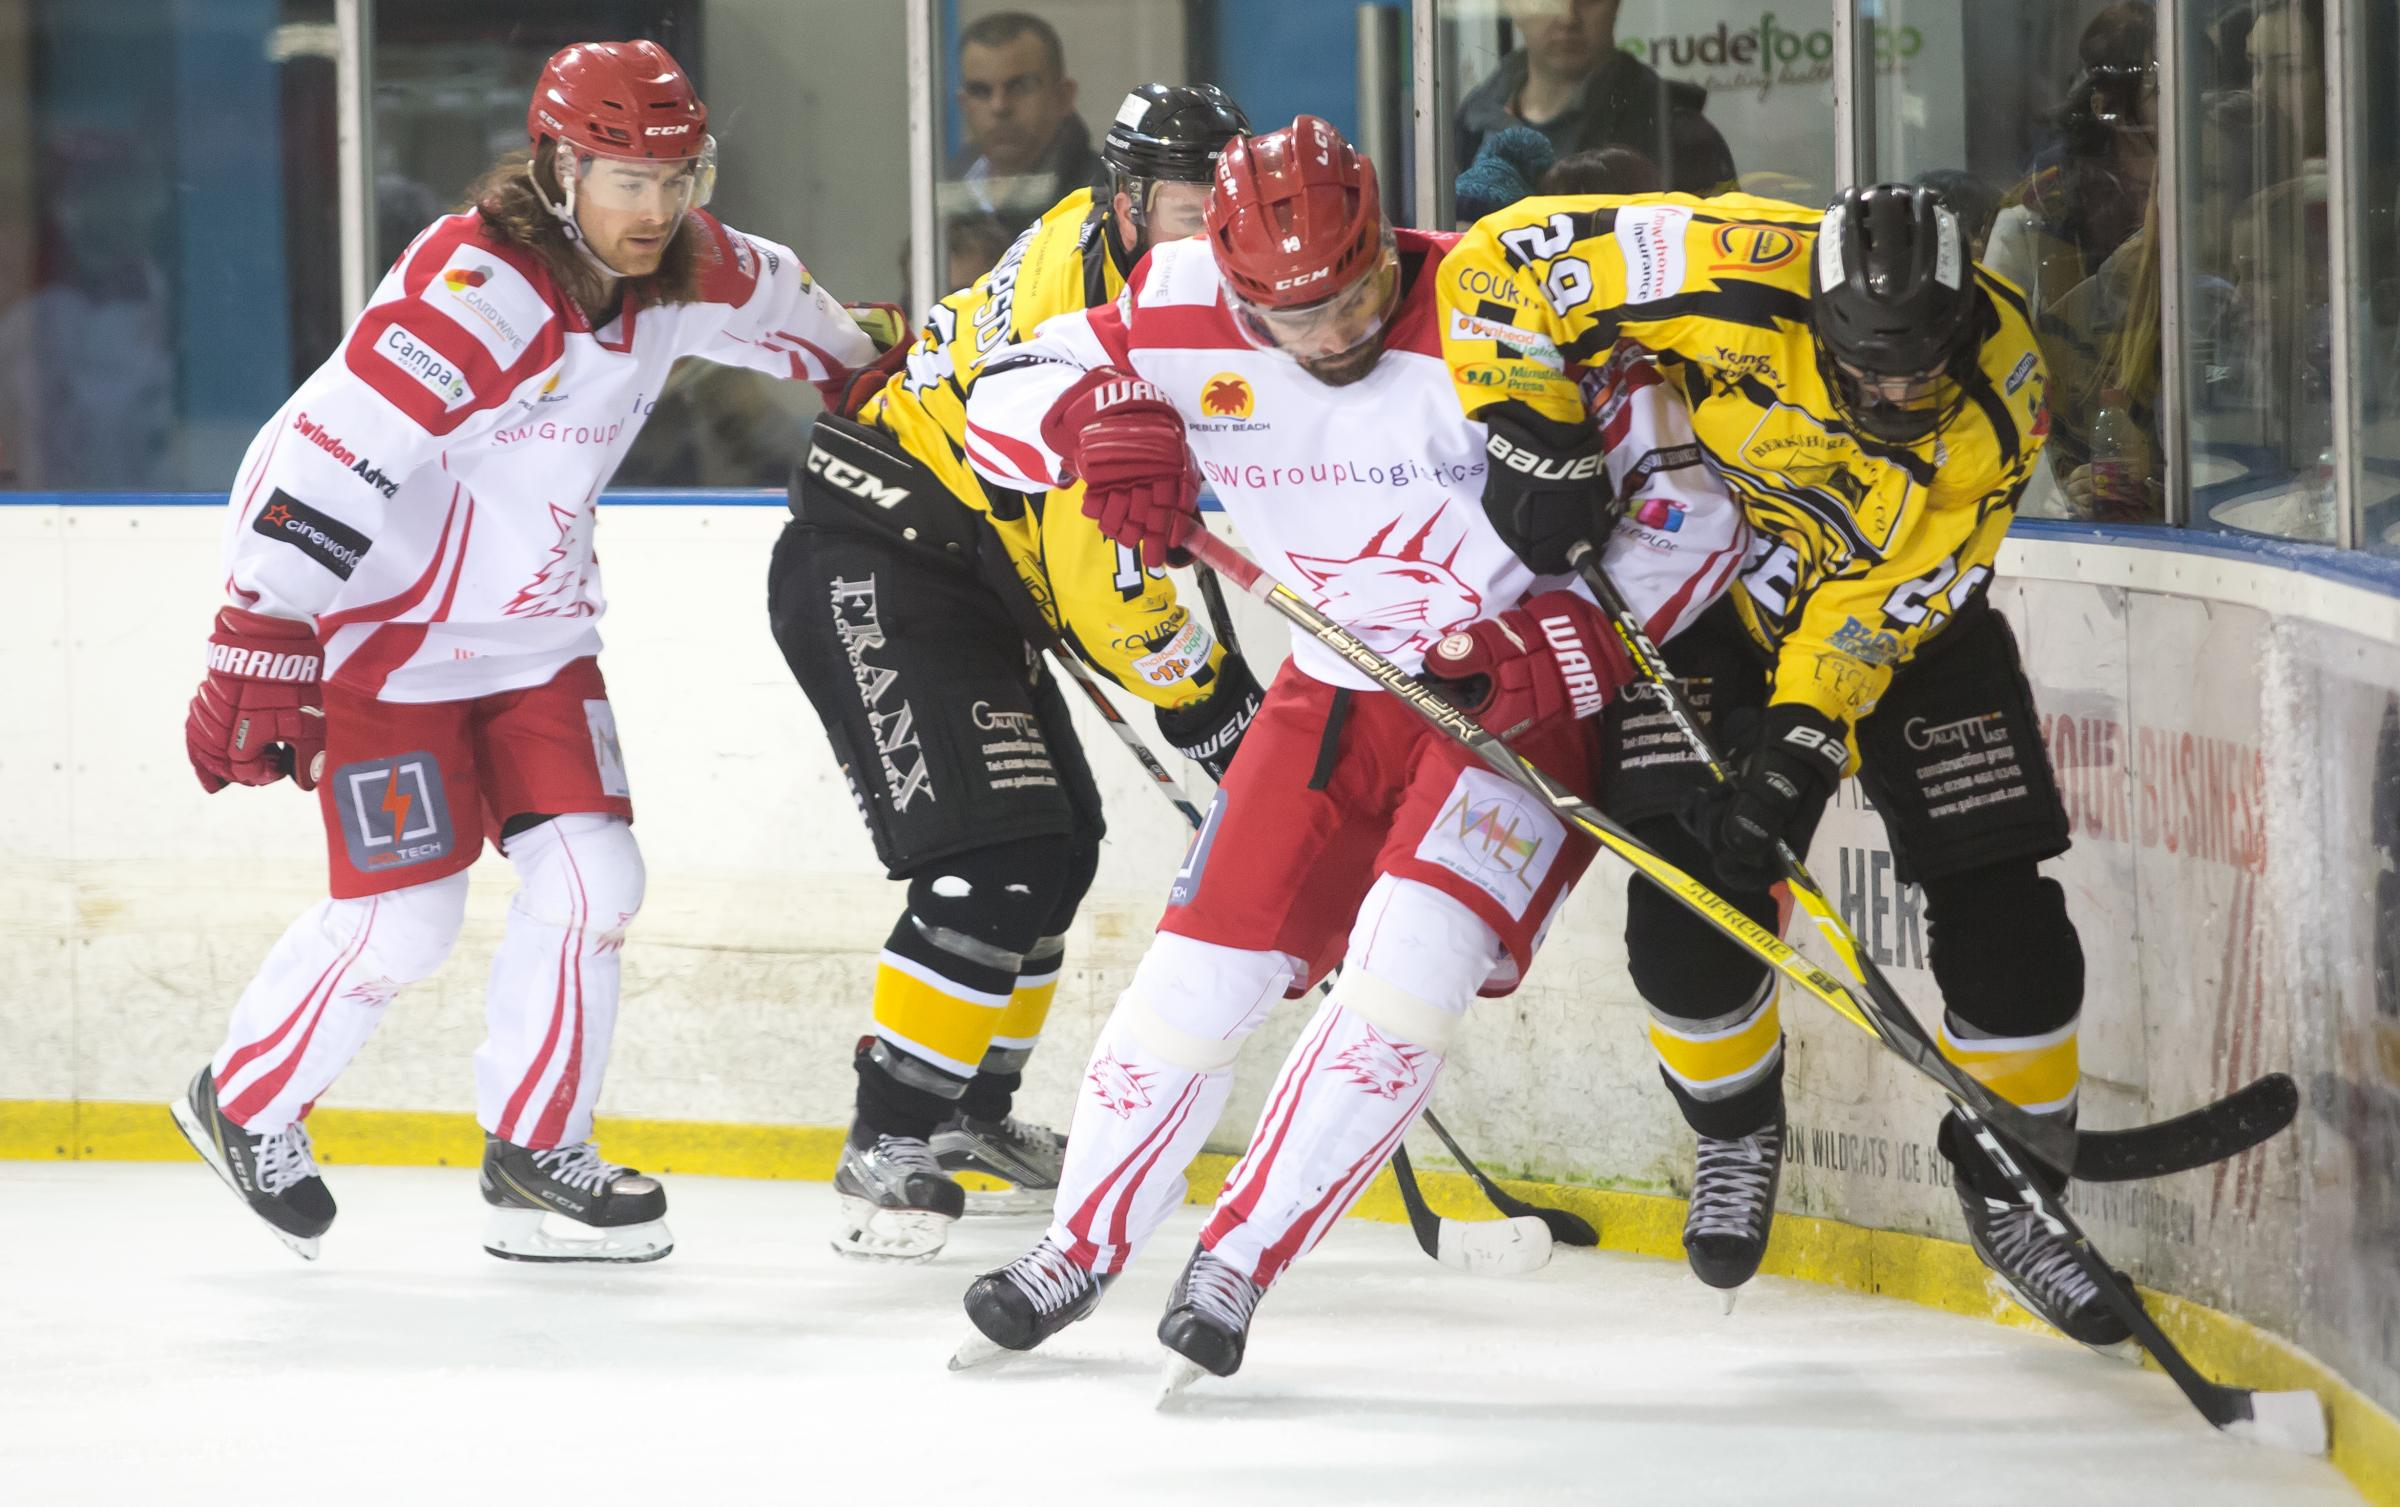 Swindon Wildcats Vs Bracknell bees 01.01.19, Picture Ryan Ainscow, Aaron Nell in the thick of the action